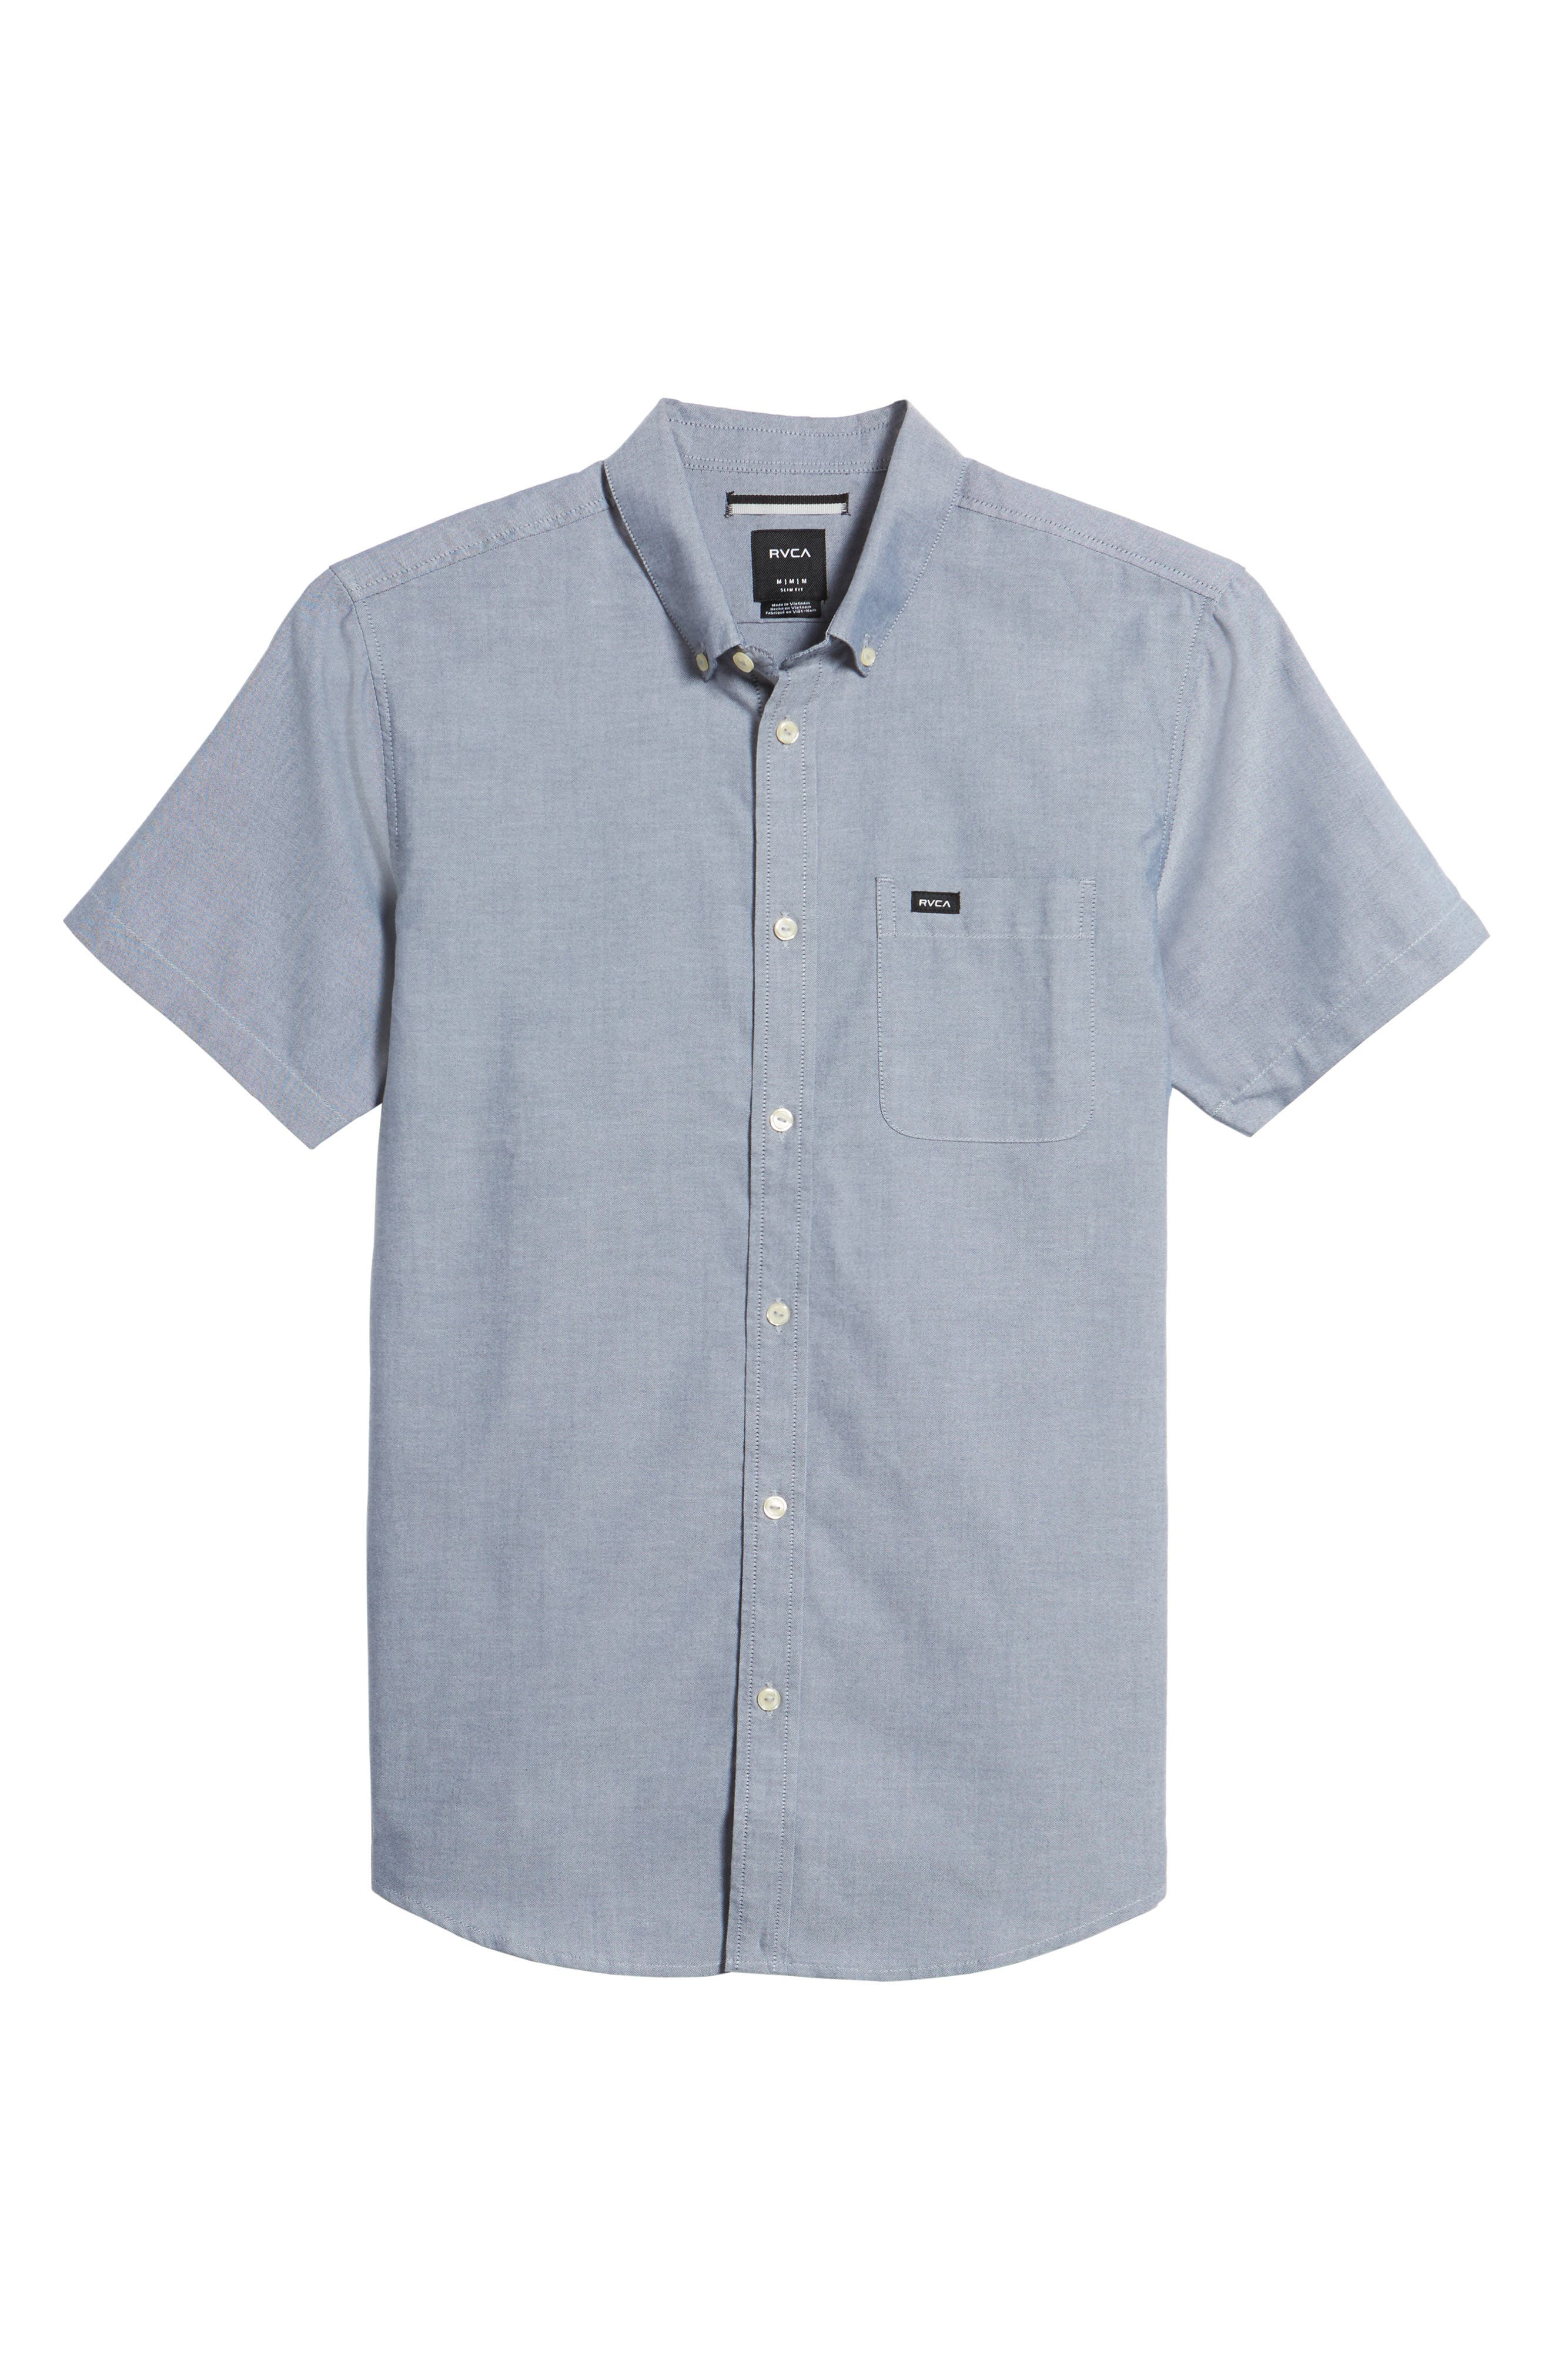 'That'll Do' Slim Fit Short Sleeve Oxford Shirt,                             Main thumbnail 1, color,                             DISTANT BLUE